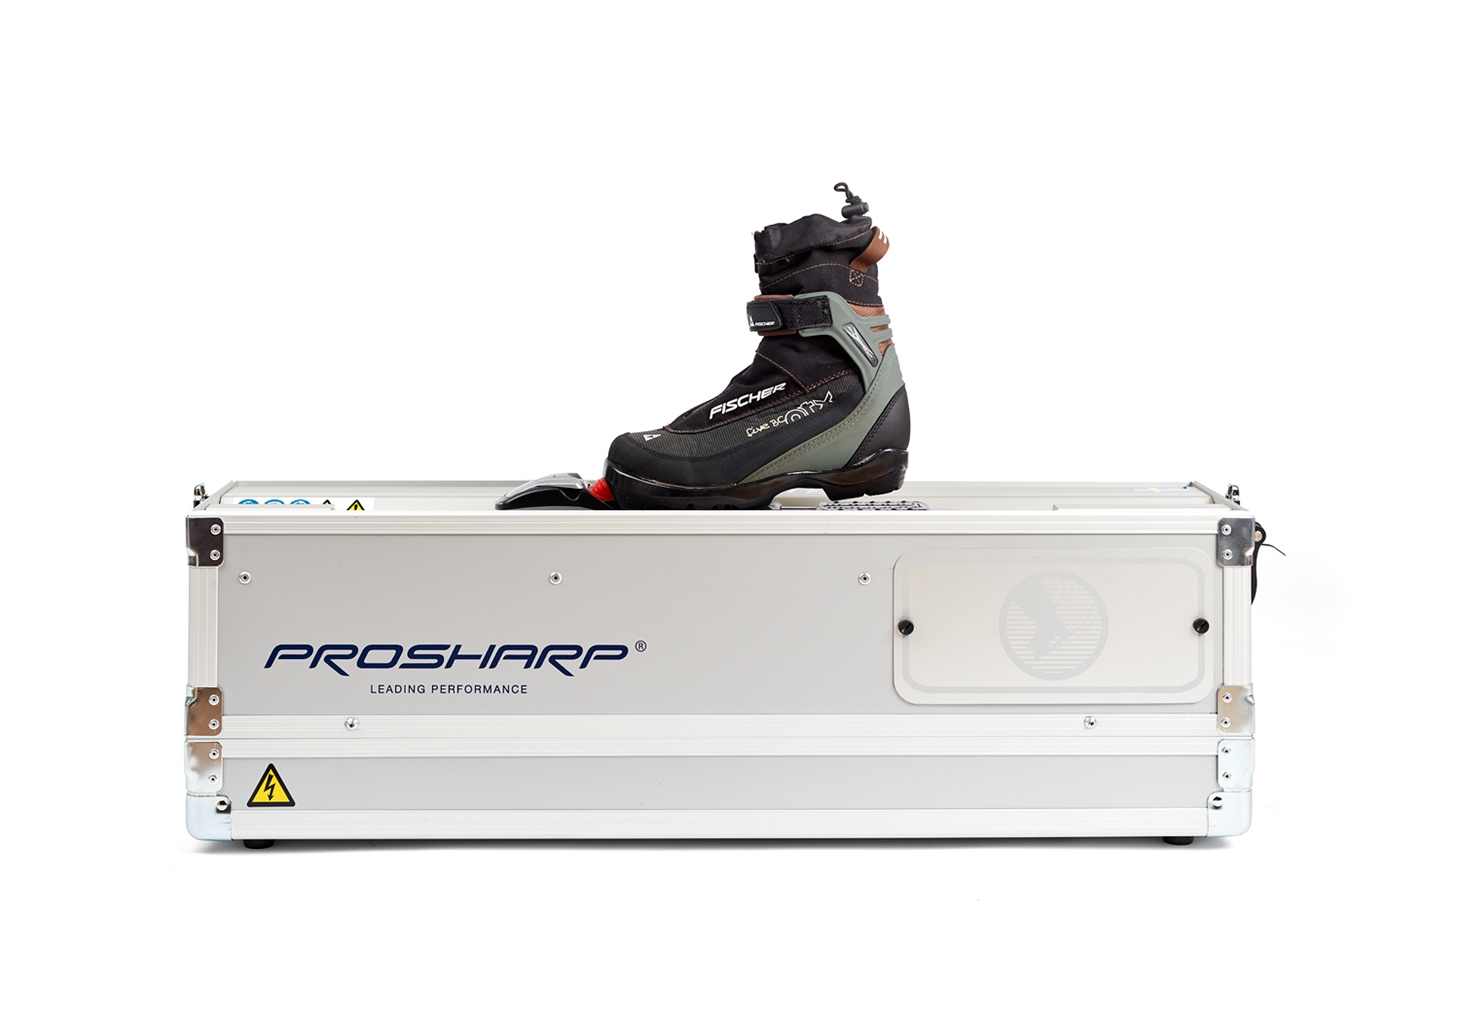 Prosharp_SkatePal_Long_72dpi_0579